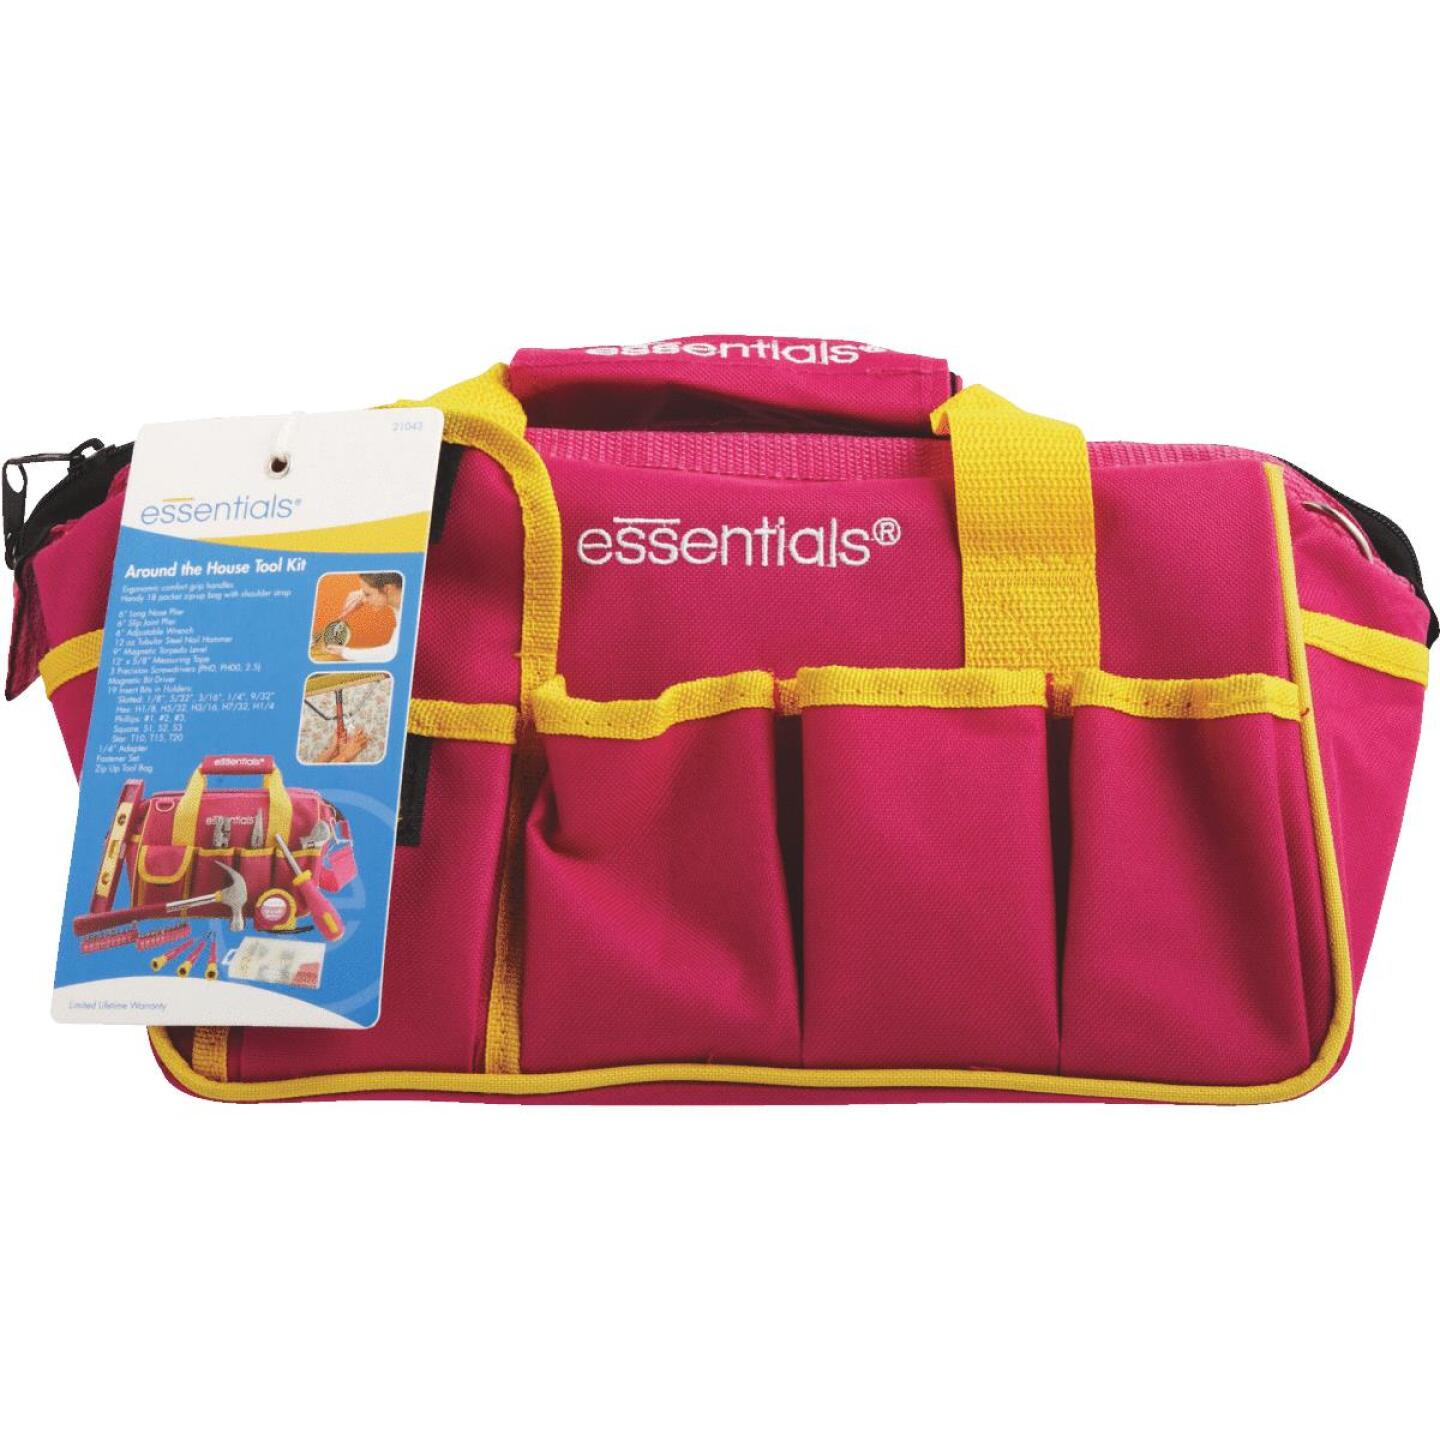 Essentials Around-the-House Homeowner's Tool Set with Pink Tool Bag (32-Piece) Image 3